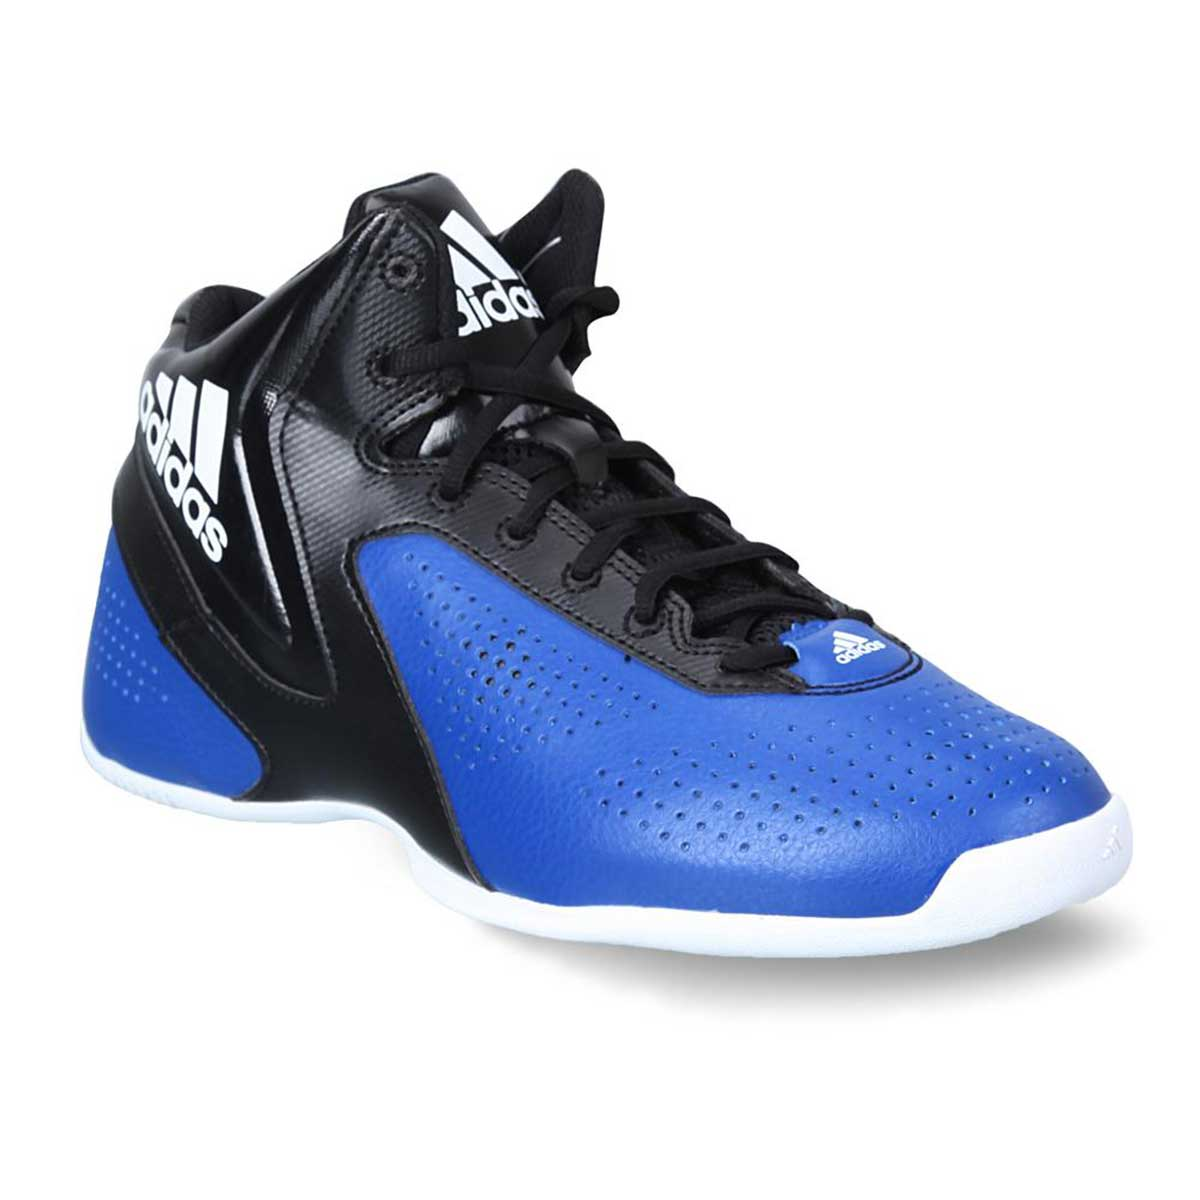 better price for hot sales good Adidas Next Level Speed Basketball Shoes